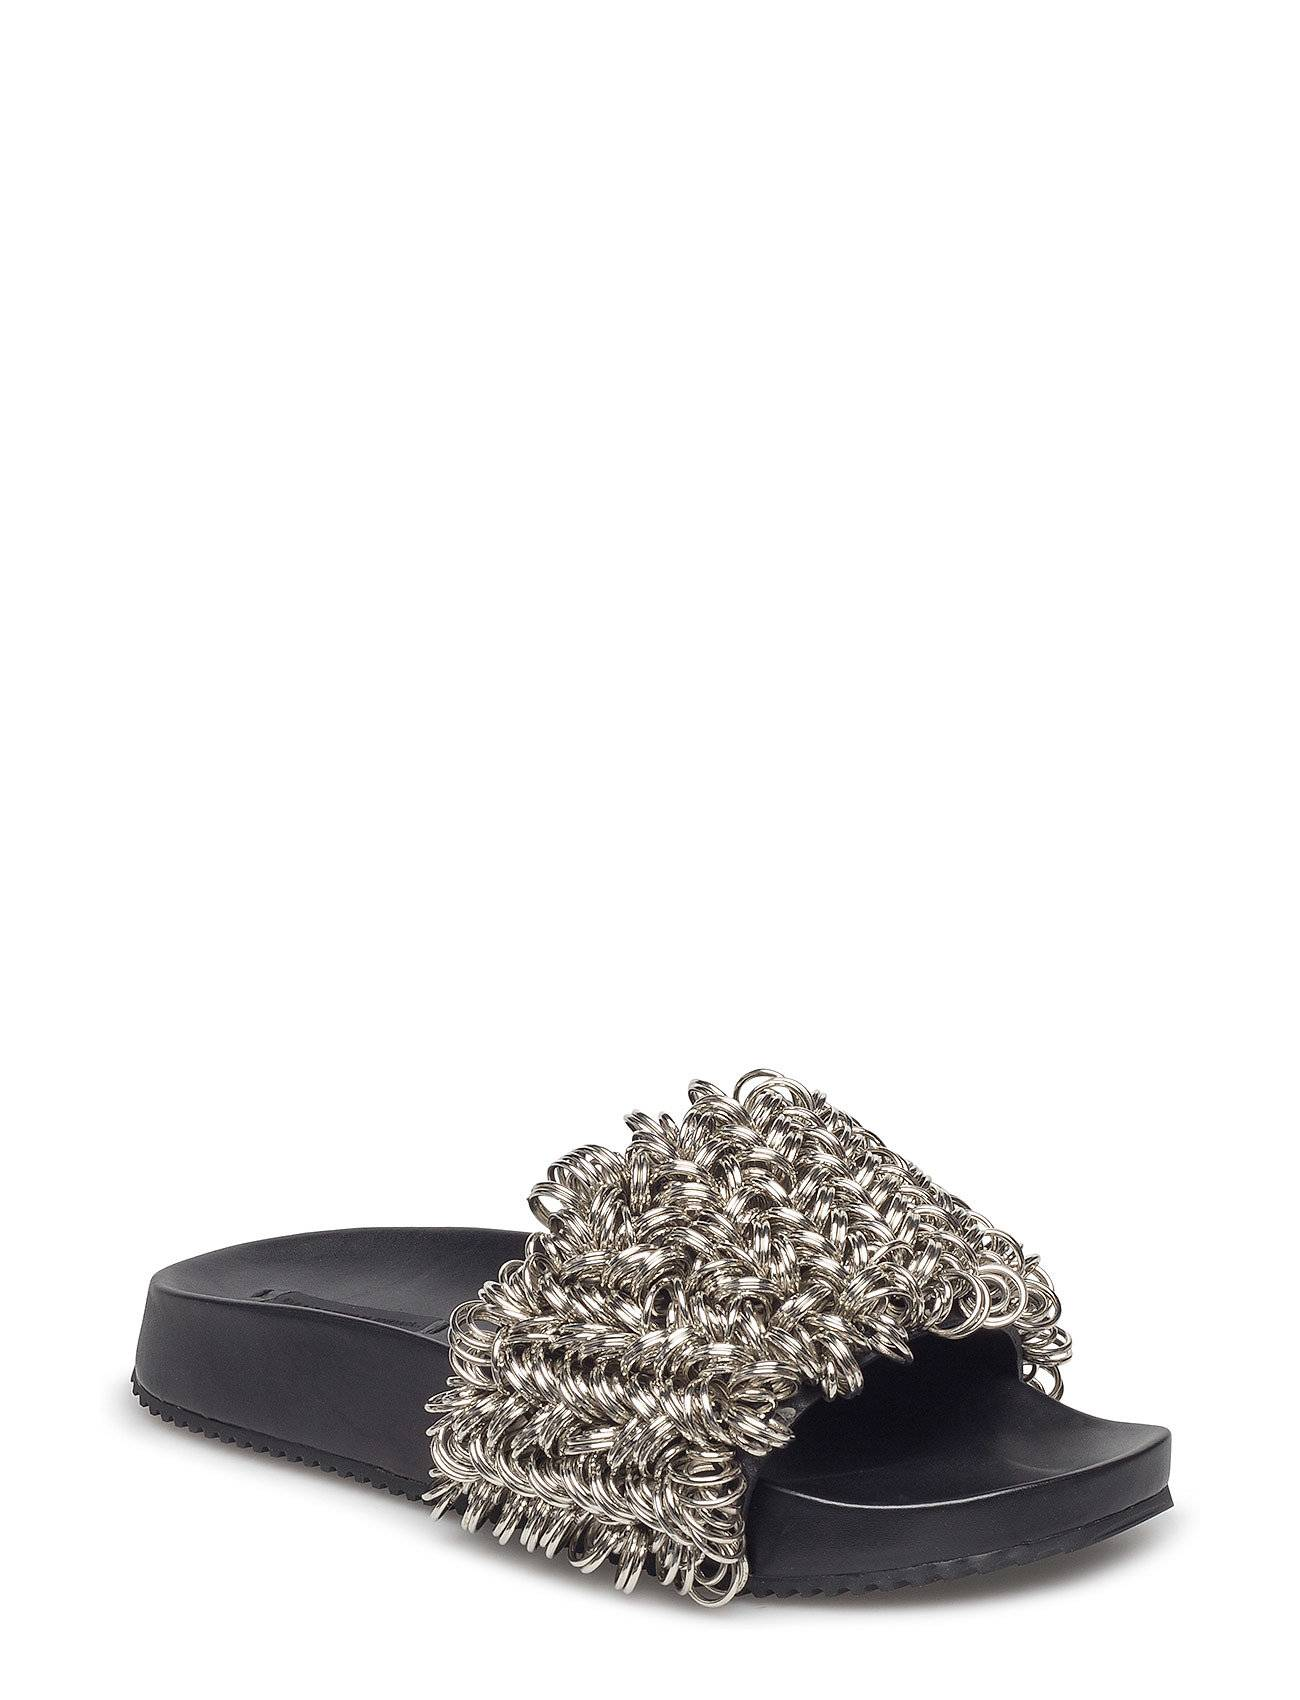 Alexander Wang Suki Rings Embroidery Black/Silver